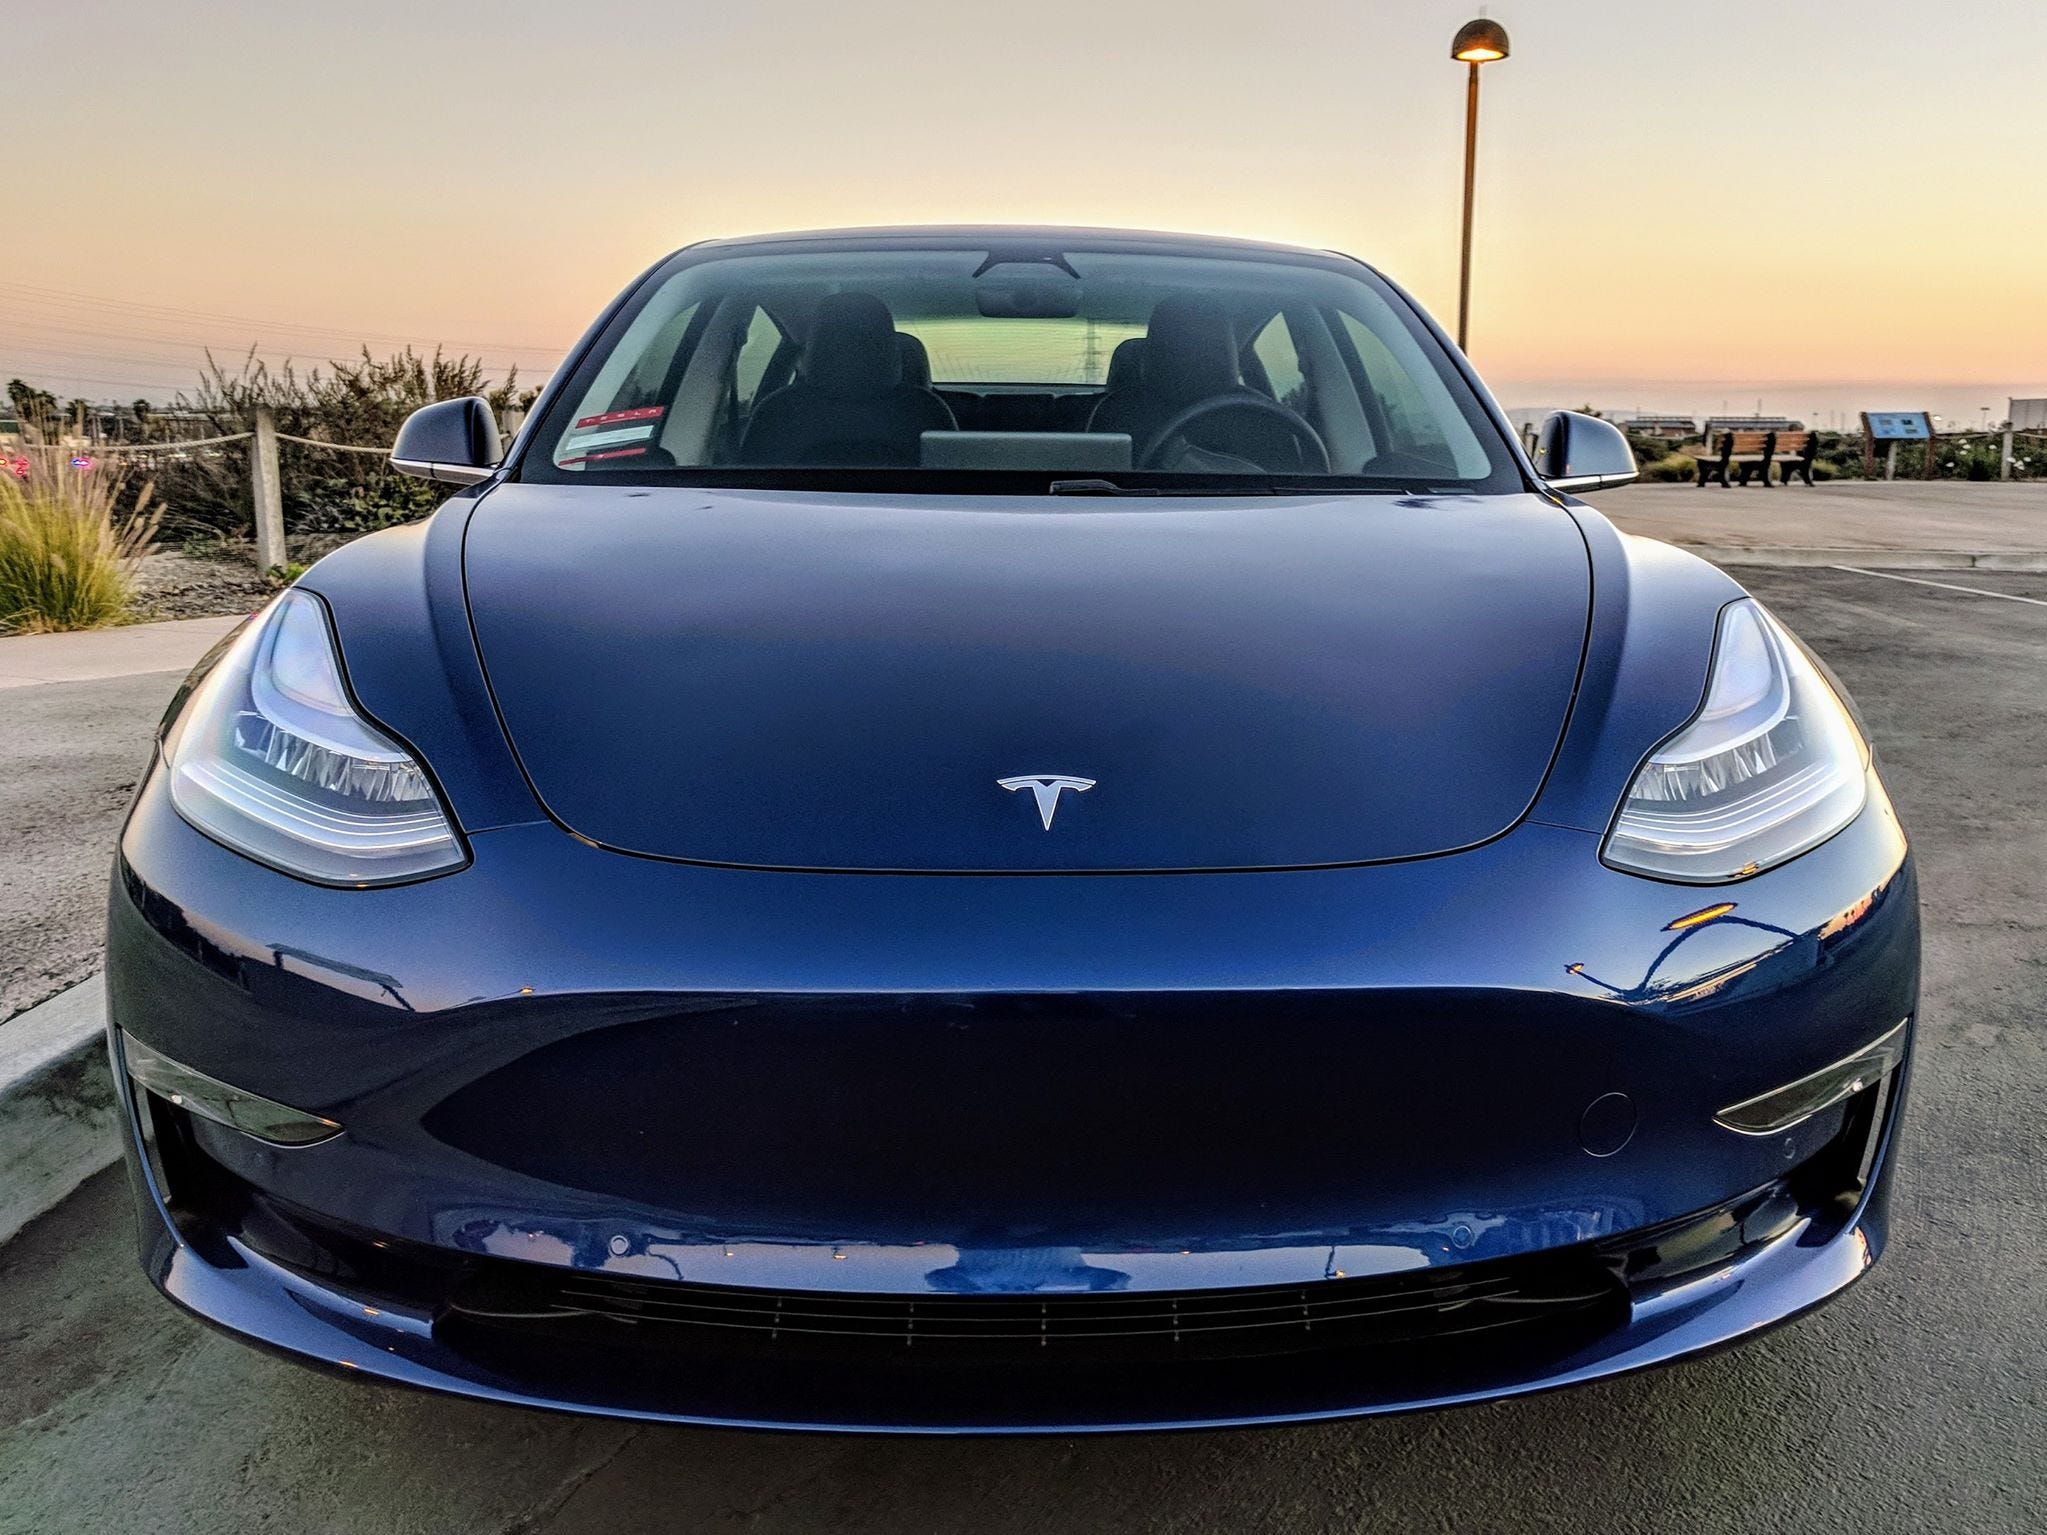 Tesla owners love sharing photos of their cars. We invited drivers across social media to send us their favorite shots.    Tom Moloughney, who runs a Tesla Model 3 Facebook group with nearly 41,000 members, shared a shot of the car he test drove. He was a first-day reservation holder.